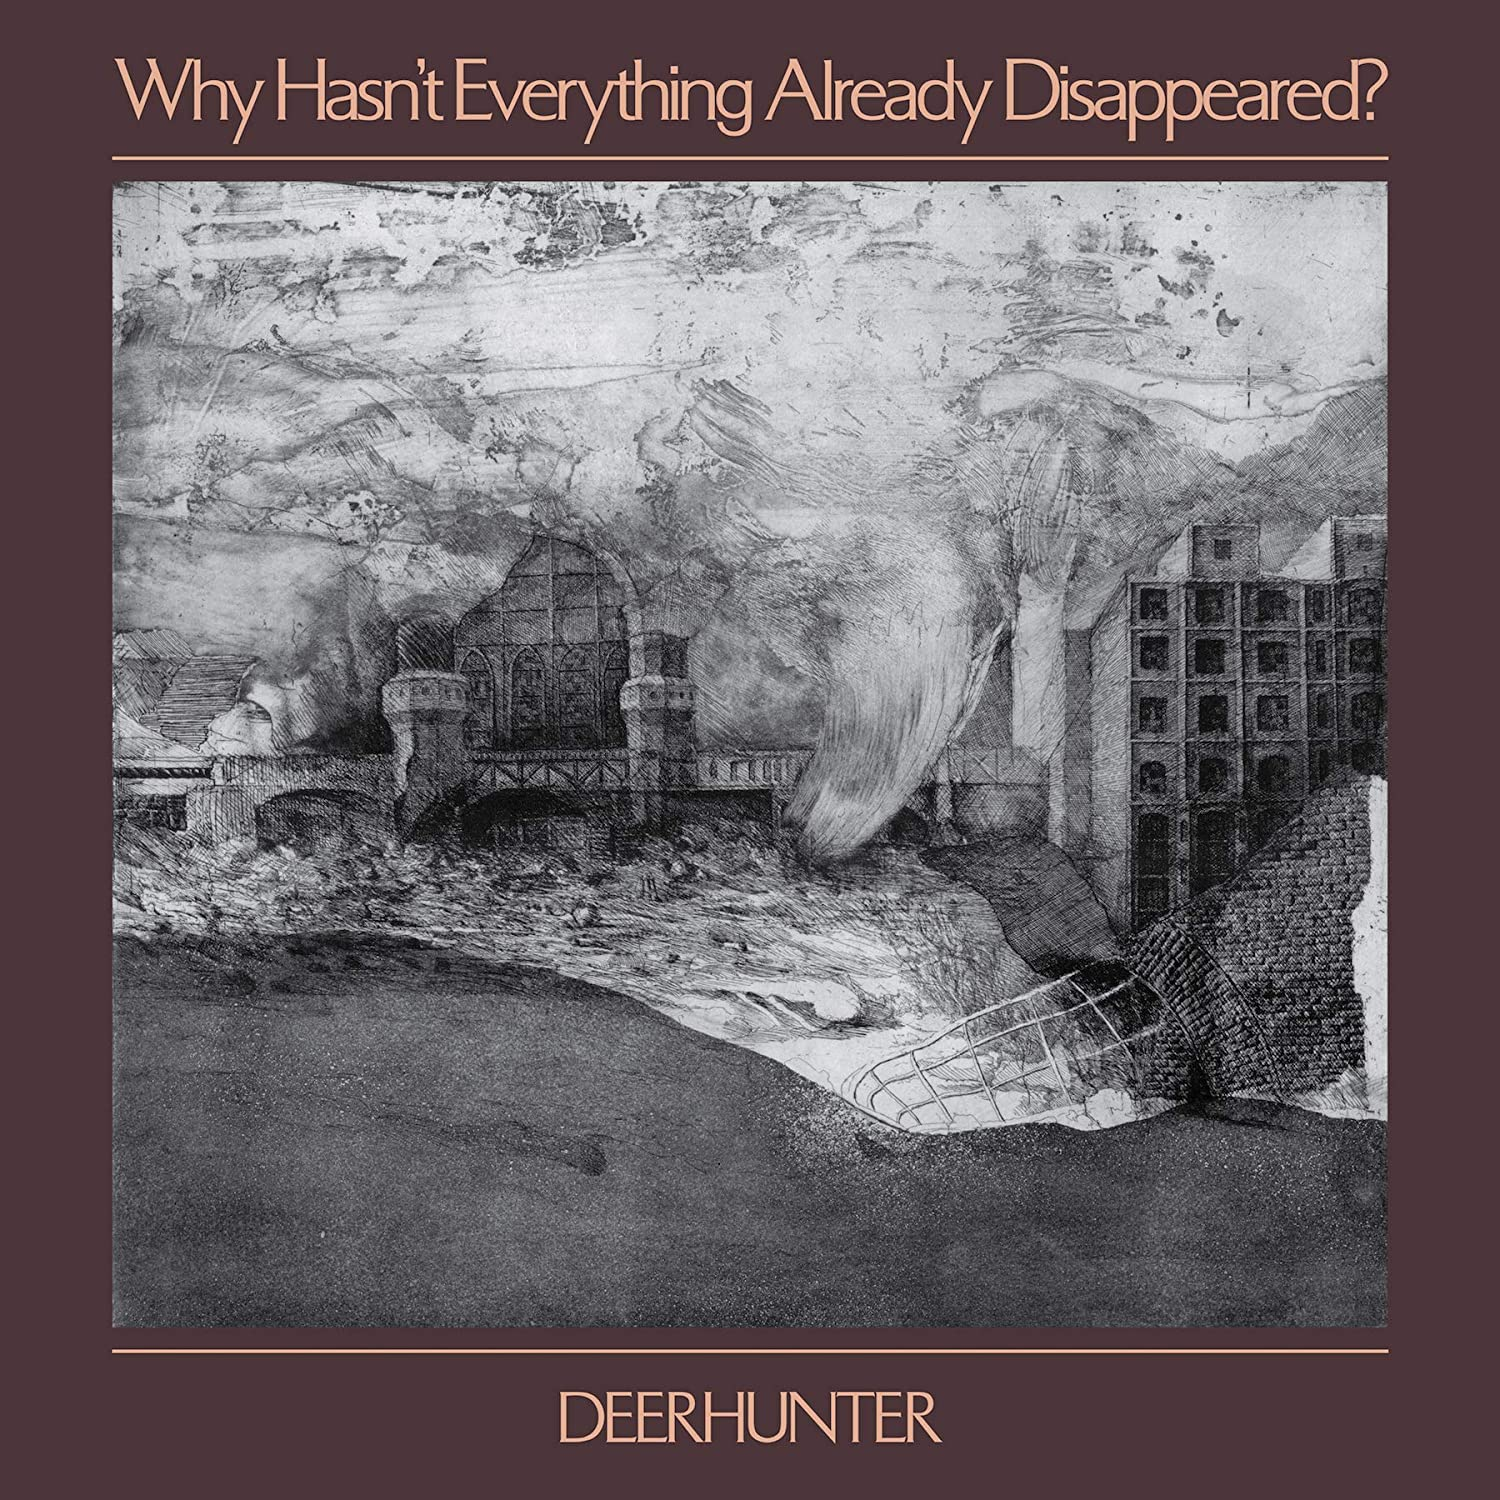 「deerhunter why hasn't everything already disappeared」の画像検索結果